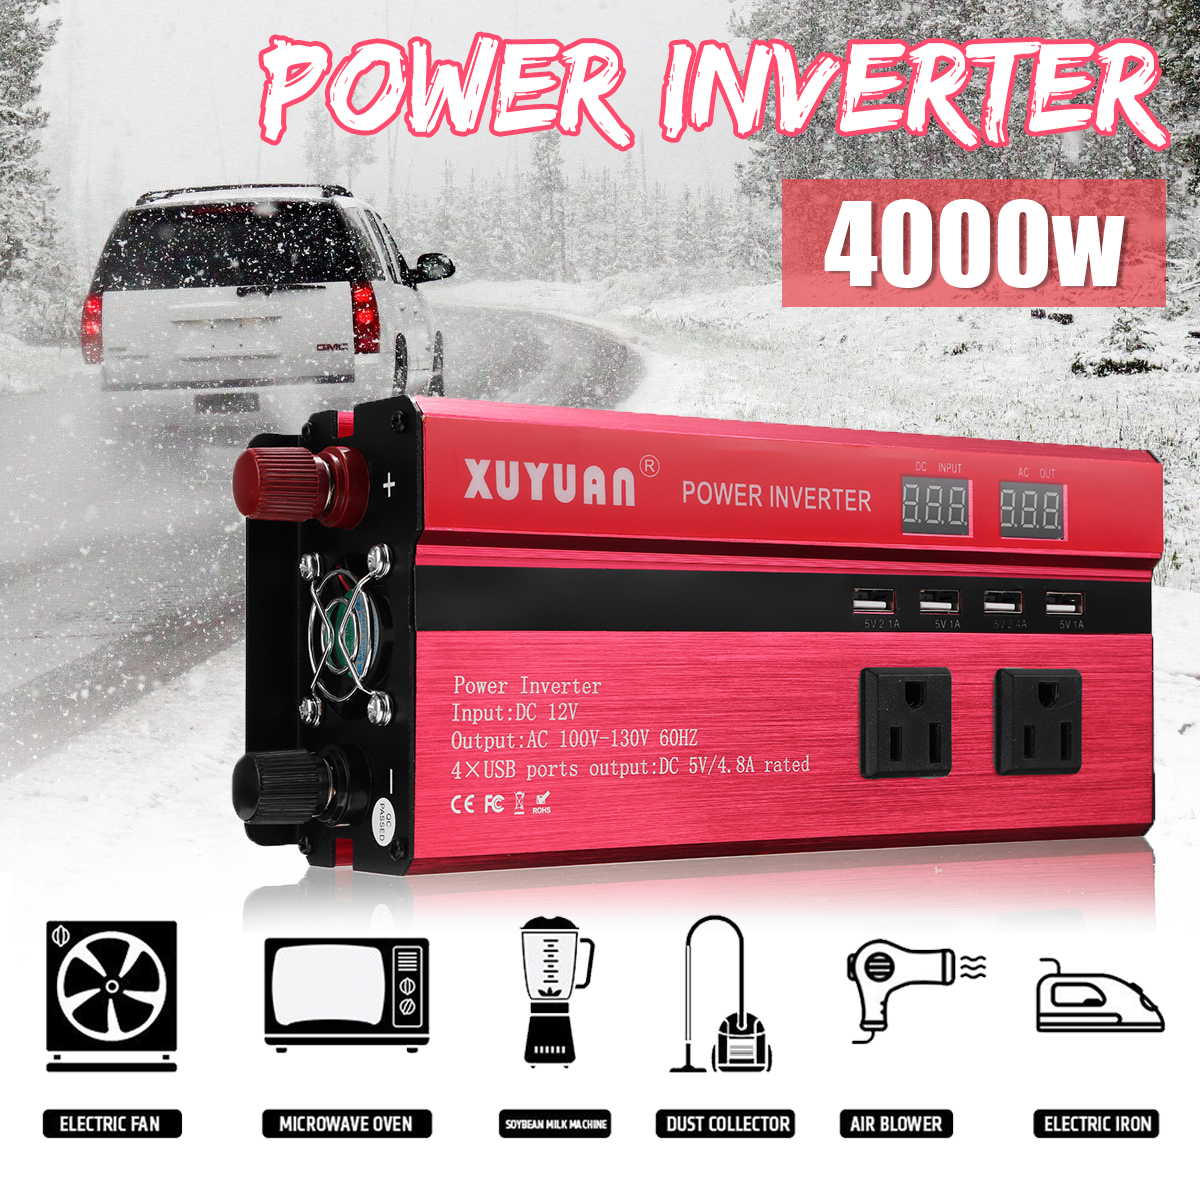 Inverter 12V 220V 4000W Peak Car Power Inverter Voltage Transformer Converter 12 220 Charger Solar Inversor 12V 220V LCD DisplayInverter 12V 220V 4000W Peak Car Power Inverter Voltage Transformer Converter 12 220 Charger Solar Inversor 12V 220V LCD Display